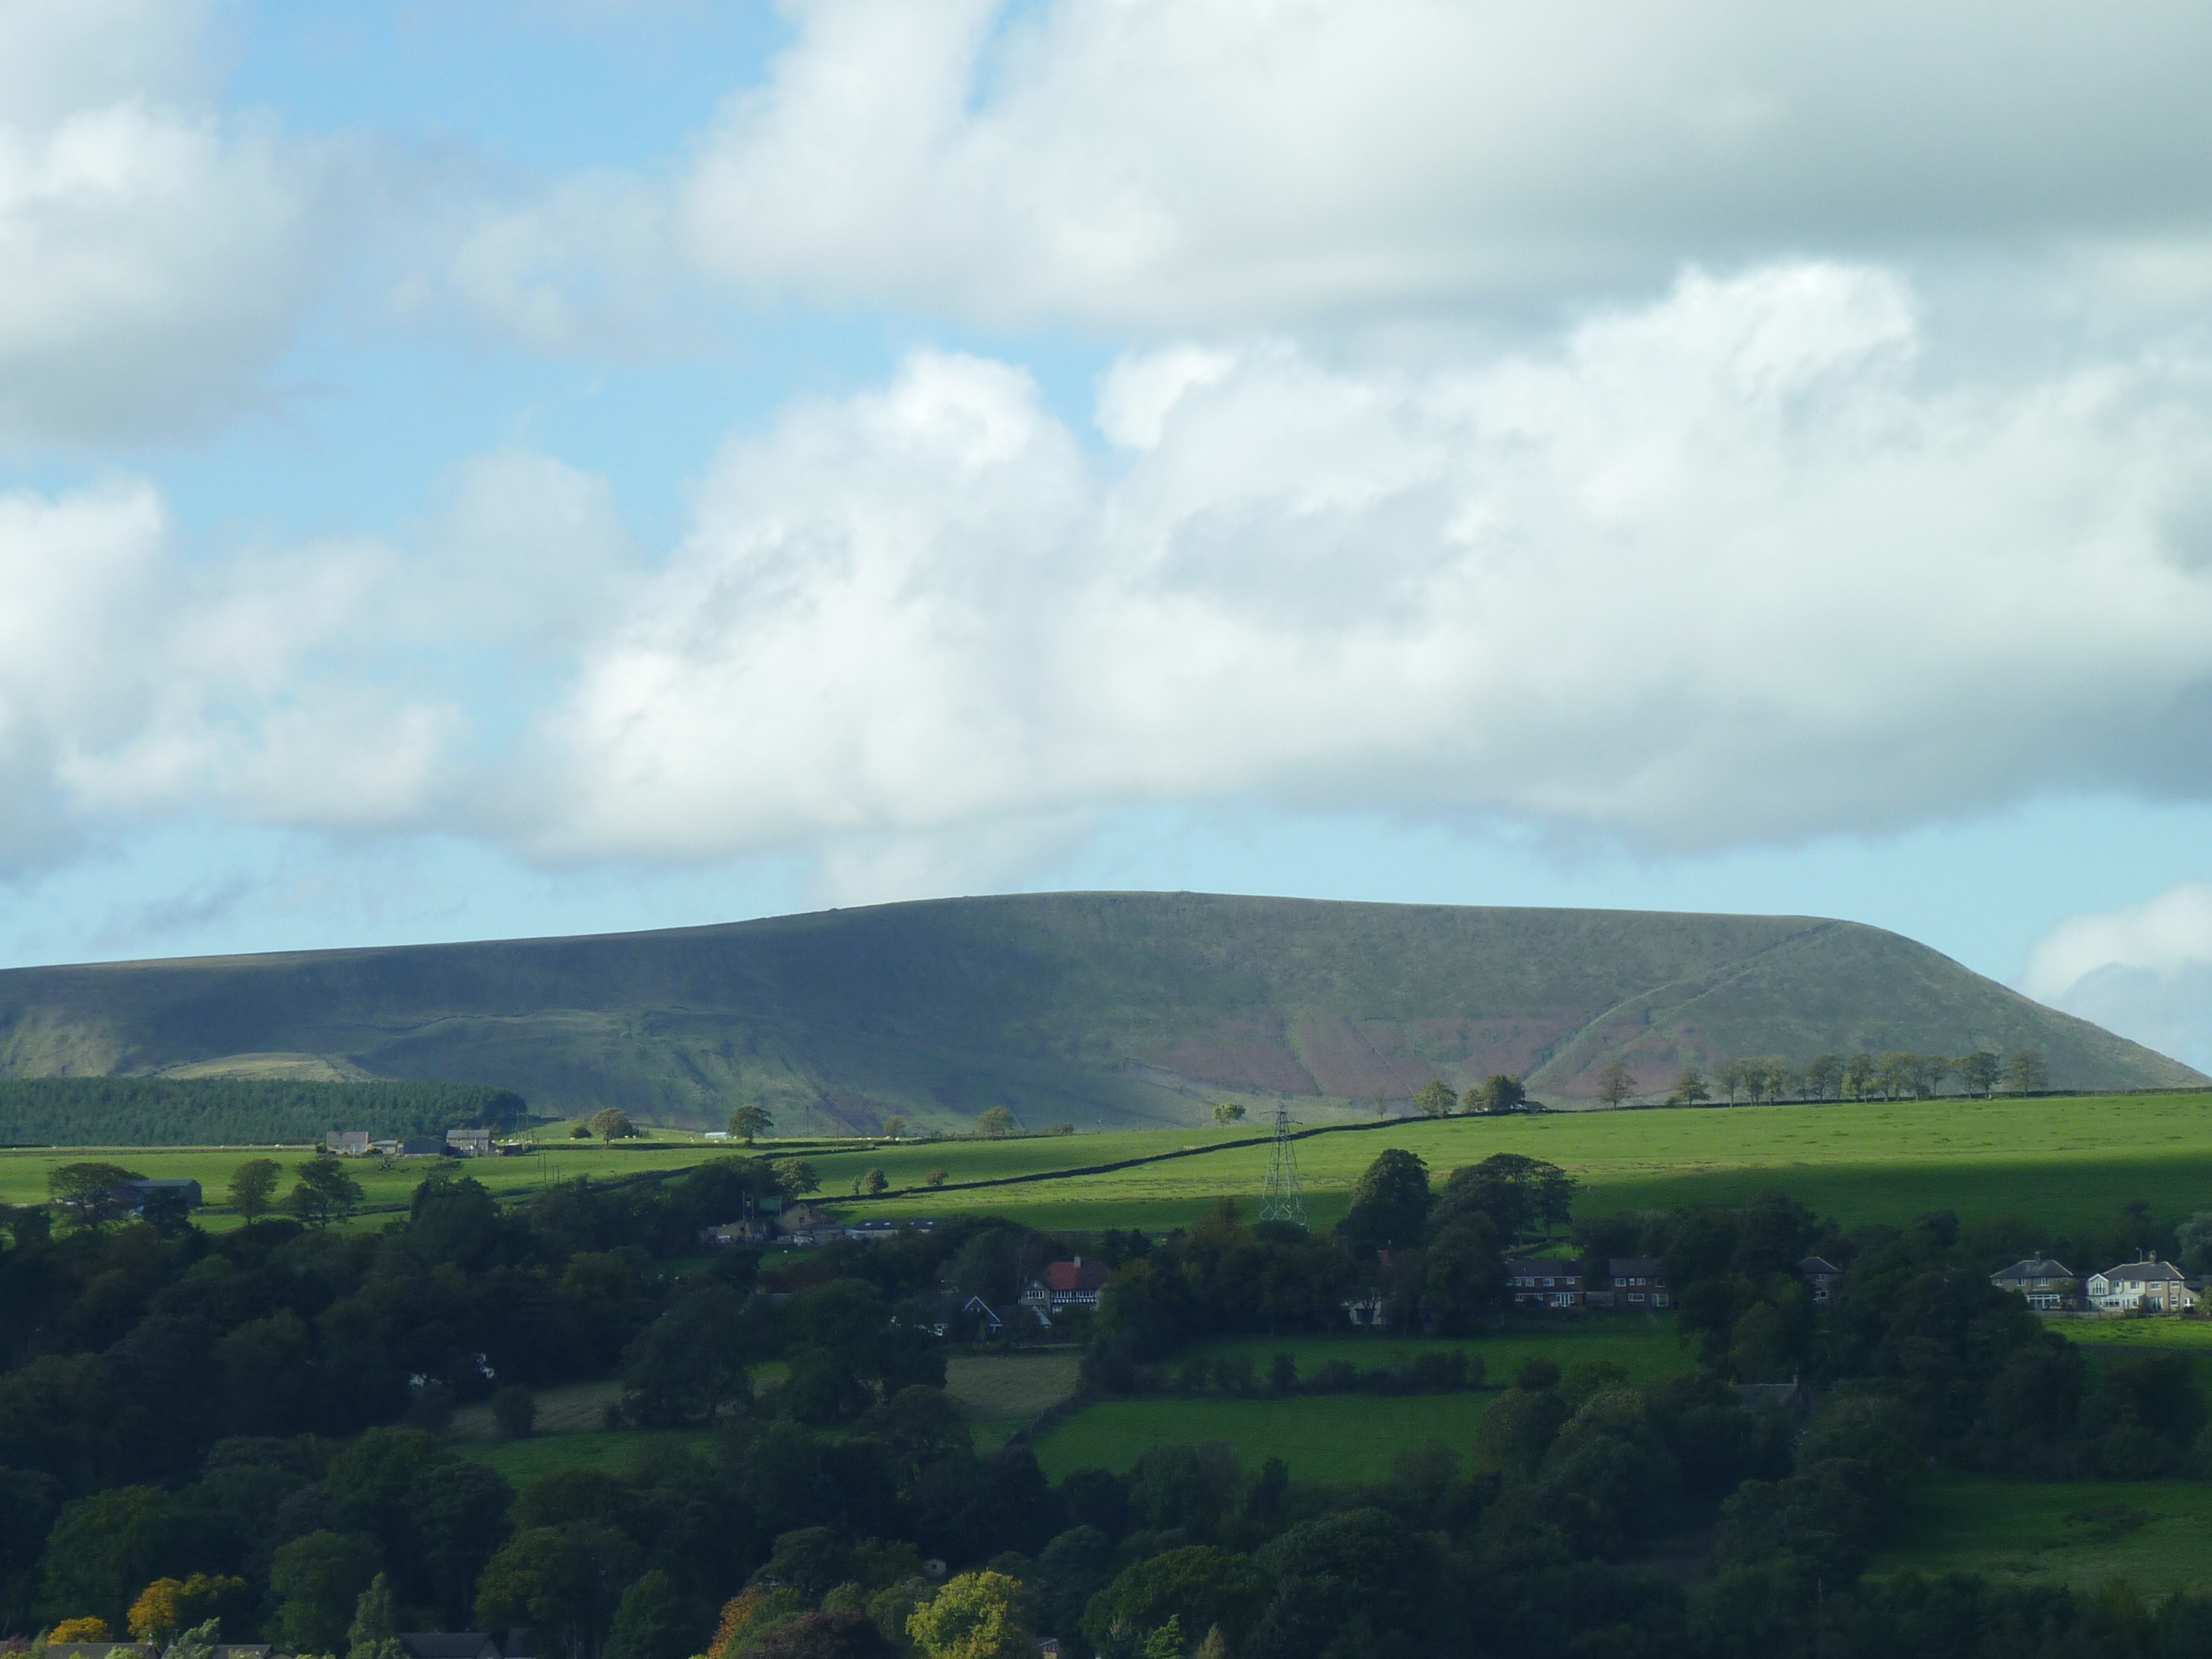 Pendle Hill from the South West Side